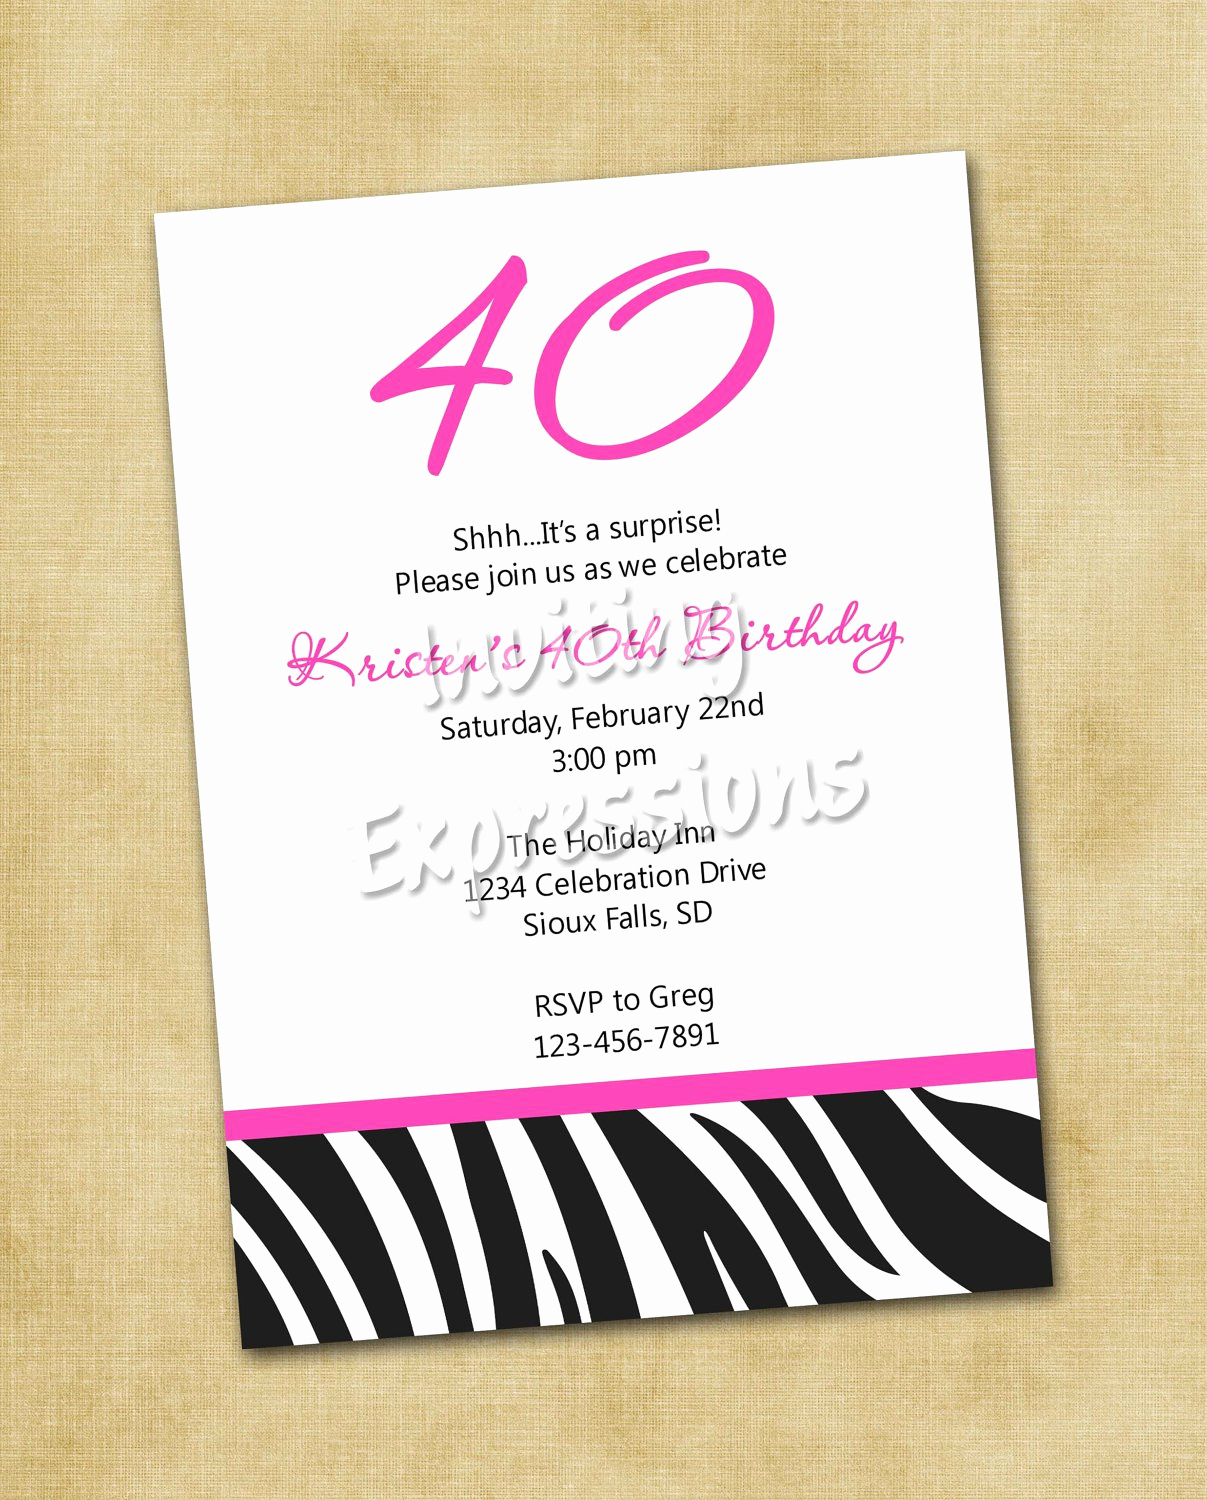 40th Anniversary Invitation Wording Fresh Surprise 40th Birthday Invitation Wording Samples